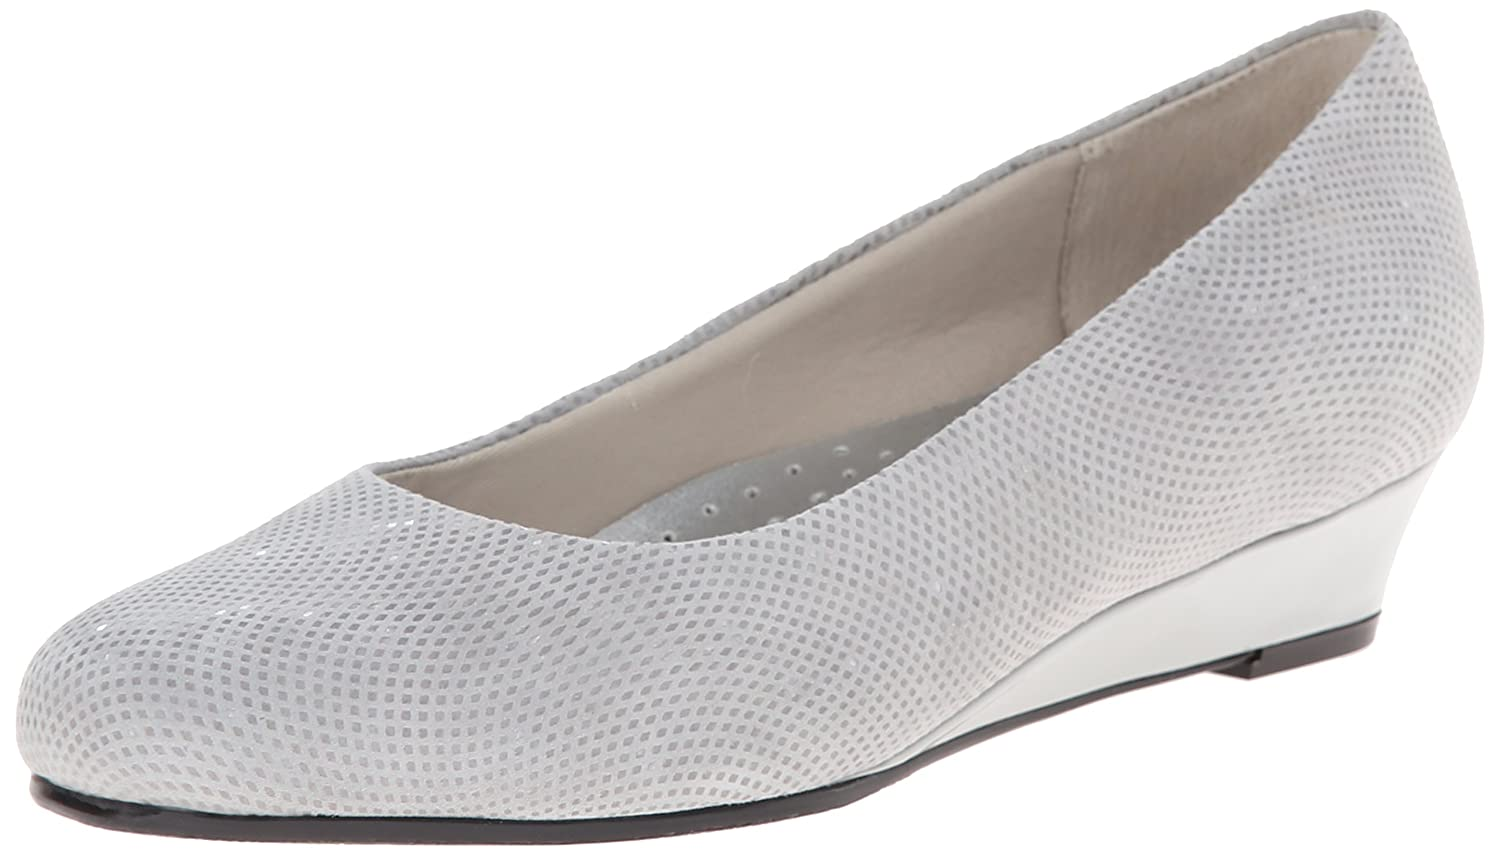 Trotters Women's Lauren Dress Wedge B00LMGWI6U 11 B(M) US|Light Grey Suede